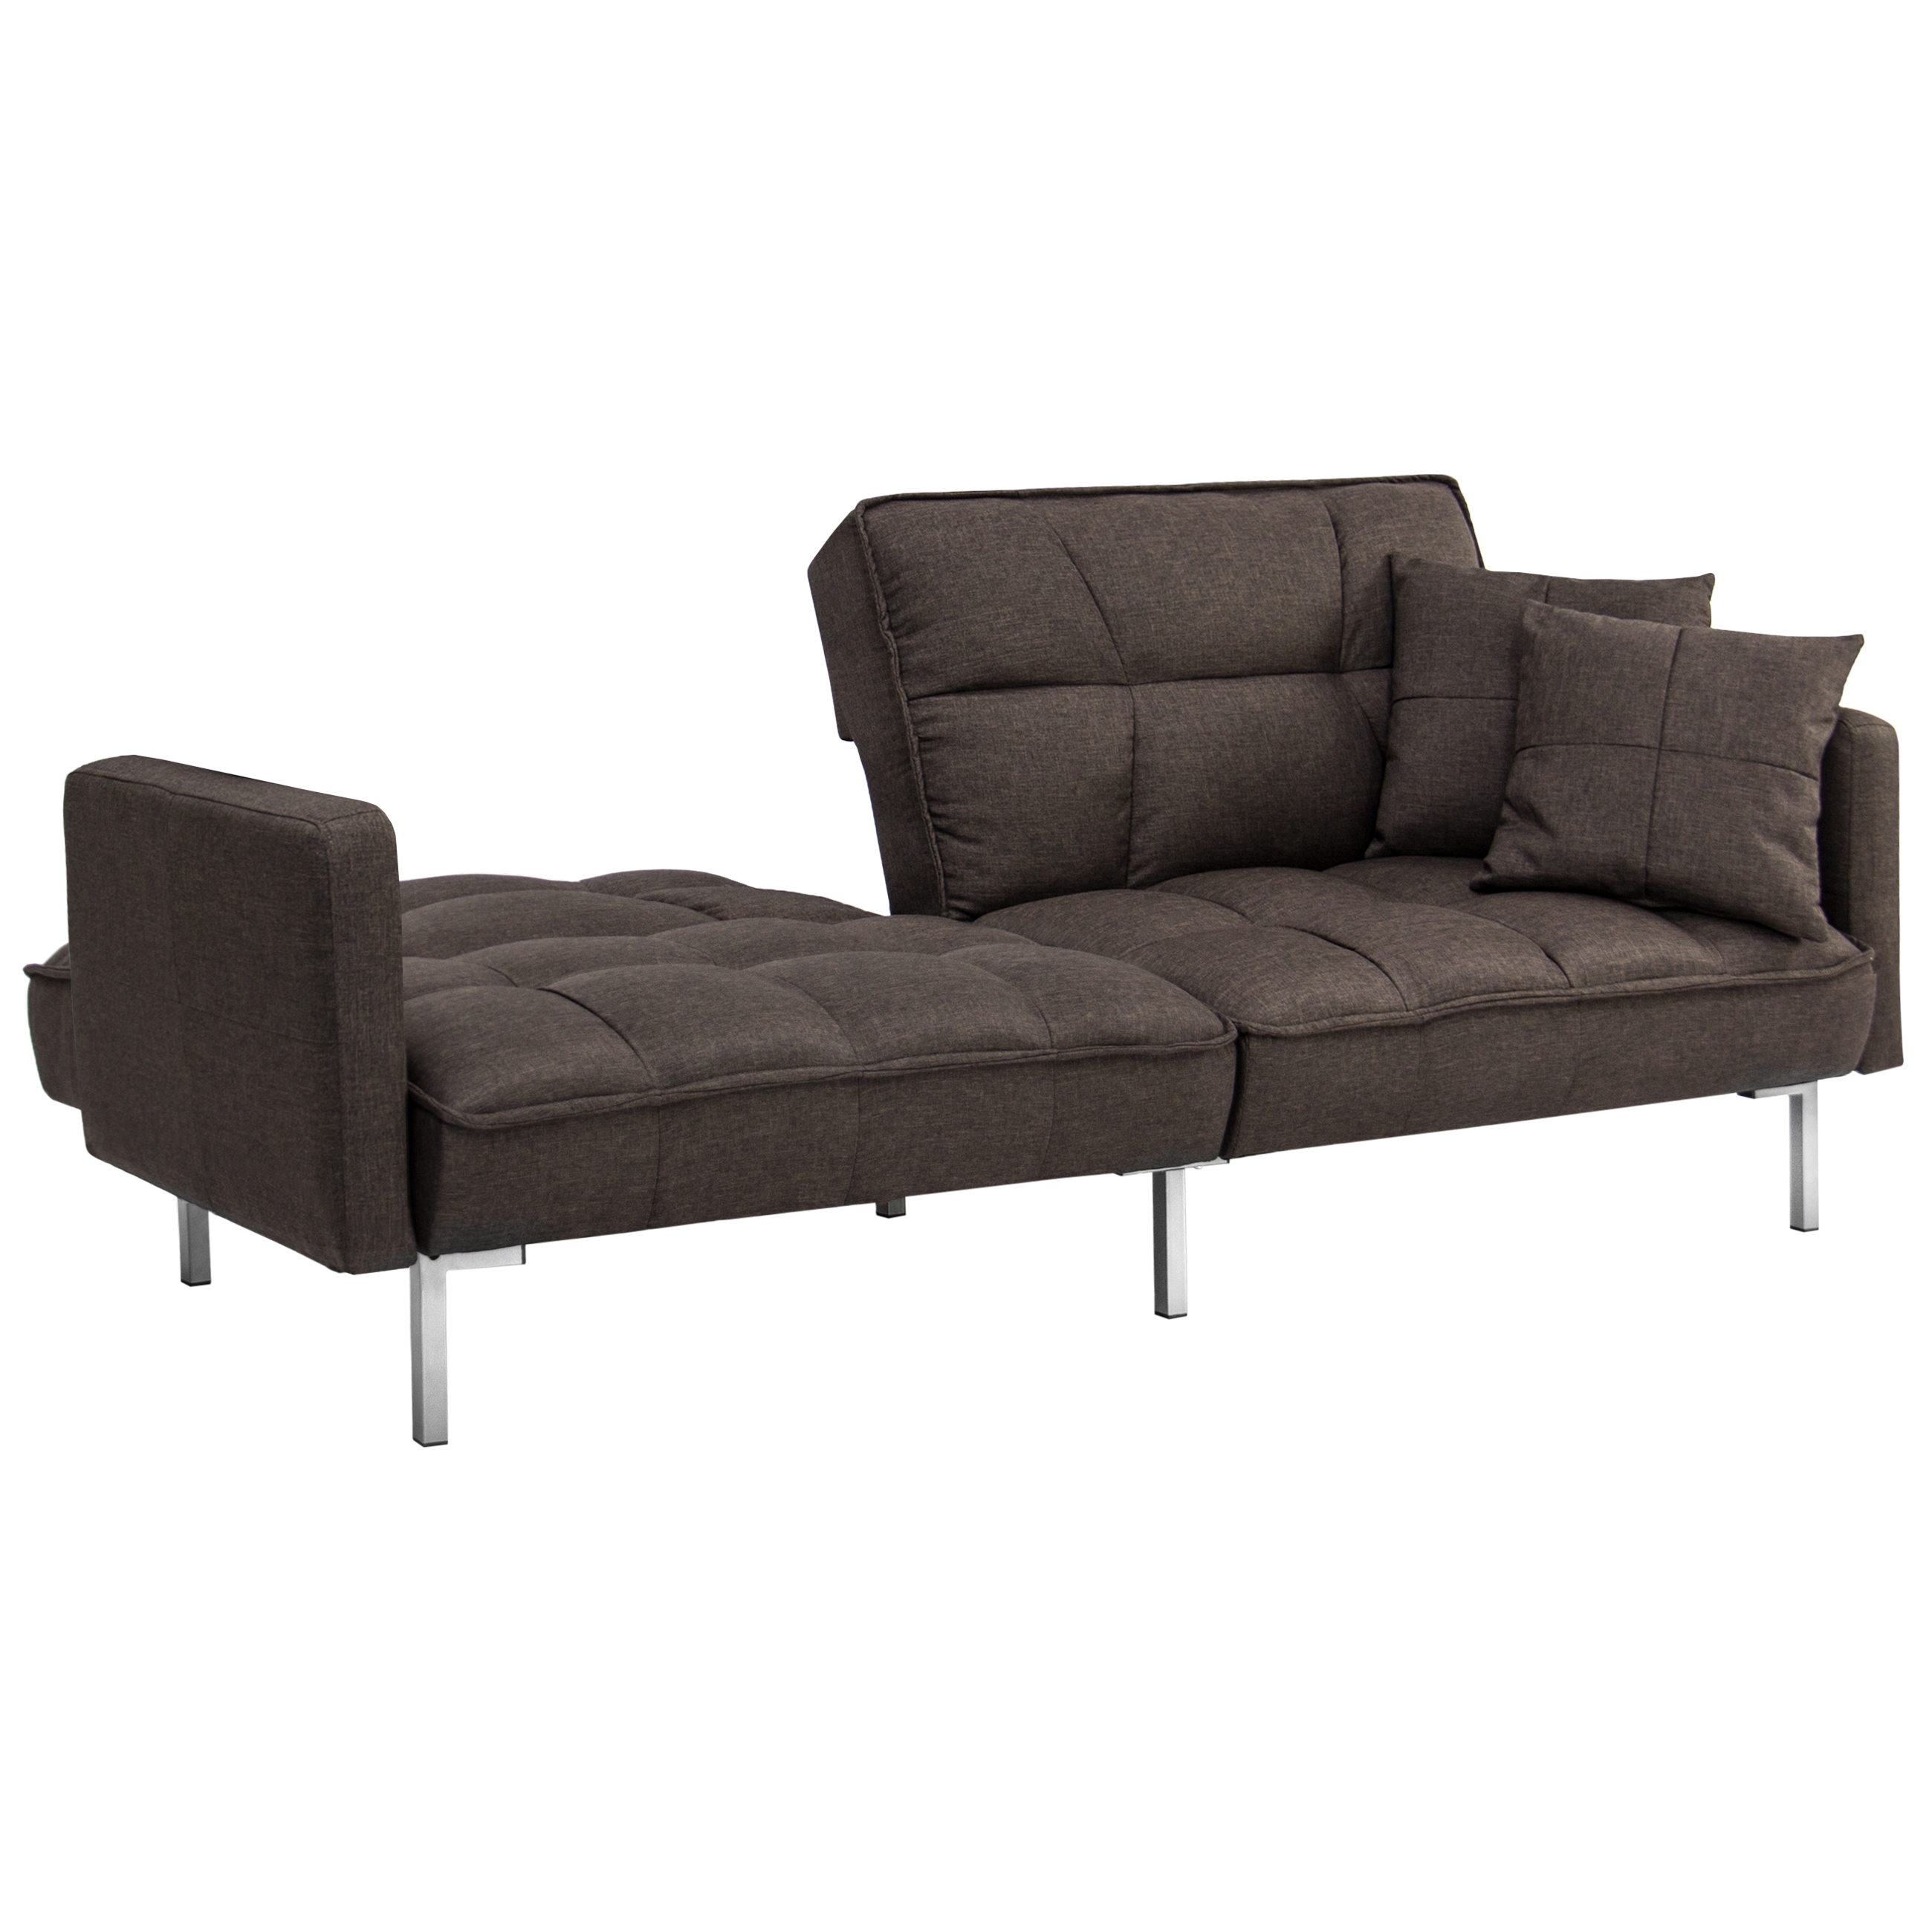 Convertible Futon Split Back Couch Sleeper Sofa Tufted Brown Linen With Pillows